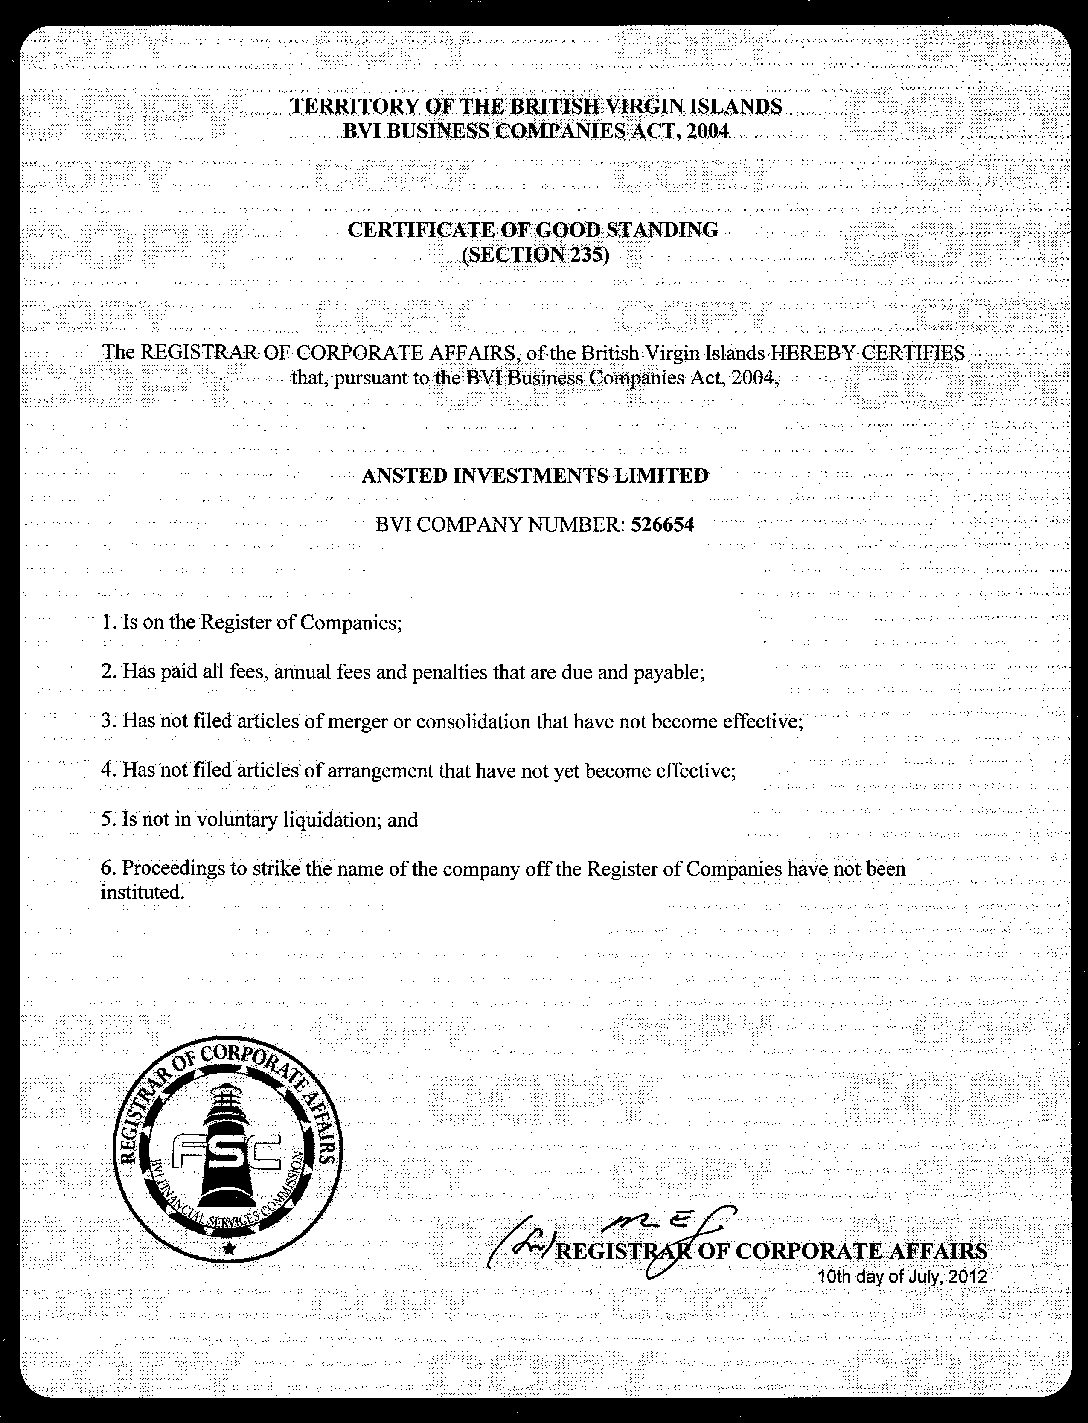 BVI Certificate of Good Standing